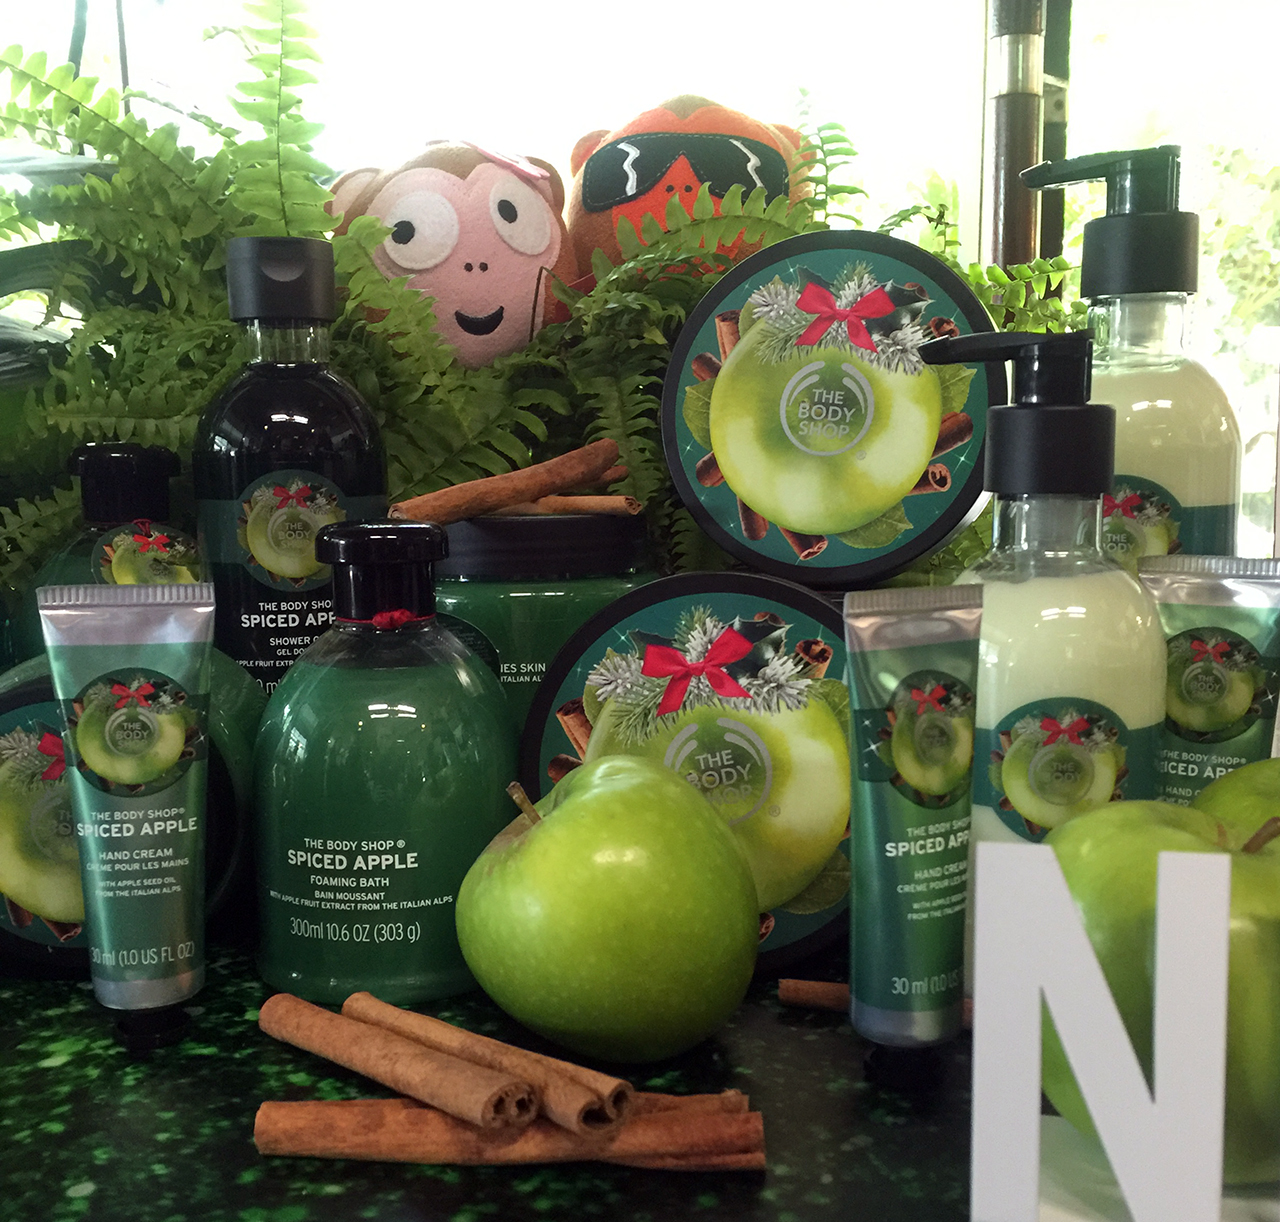 The Body Shop Spiced Apple Collection for Christmas 2016